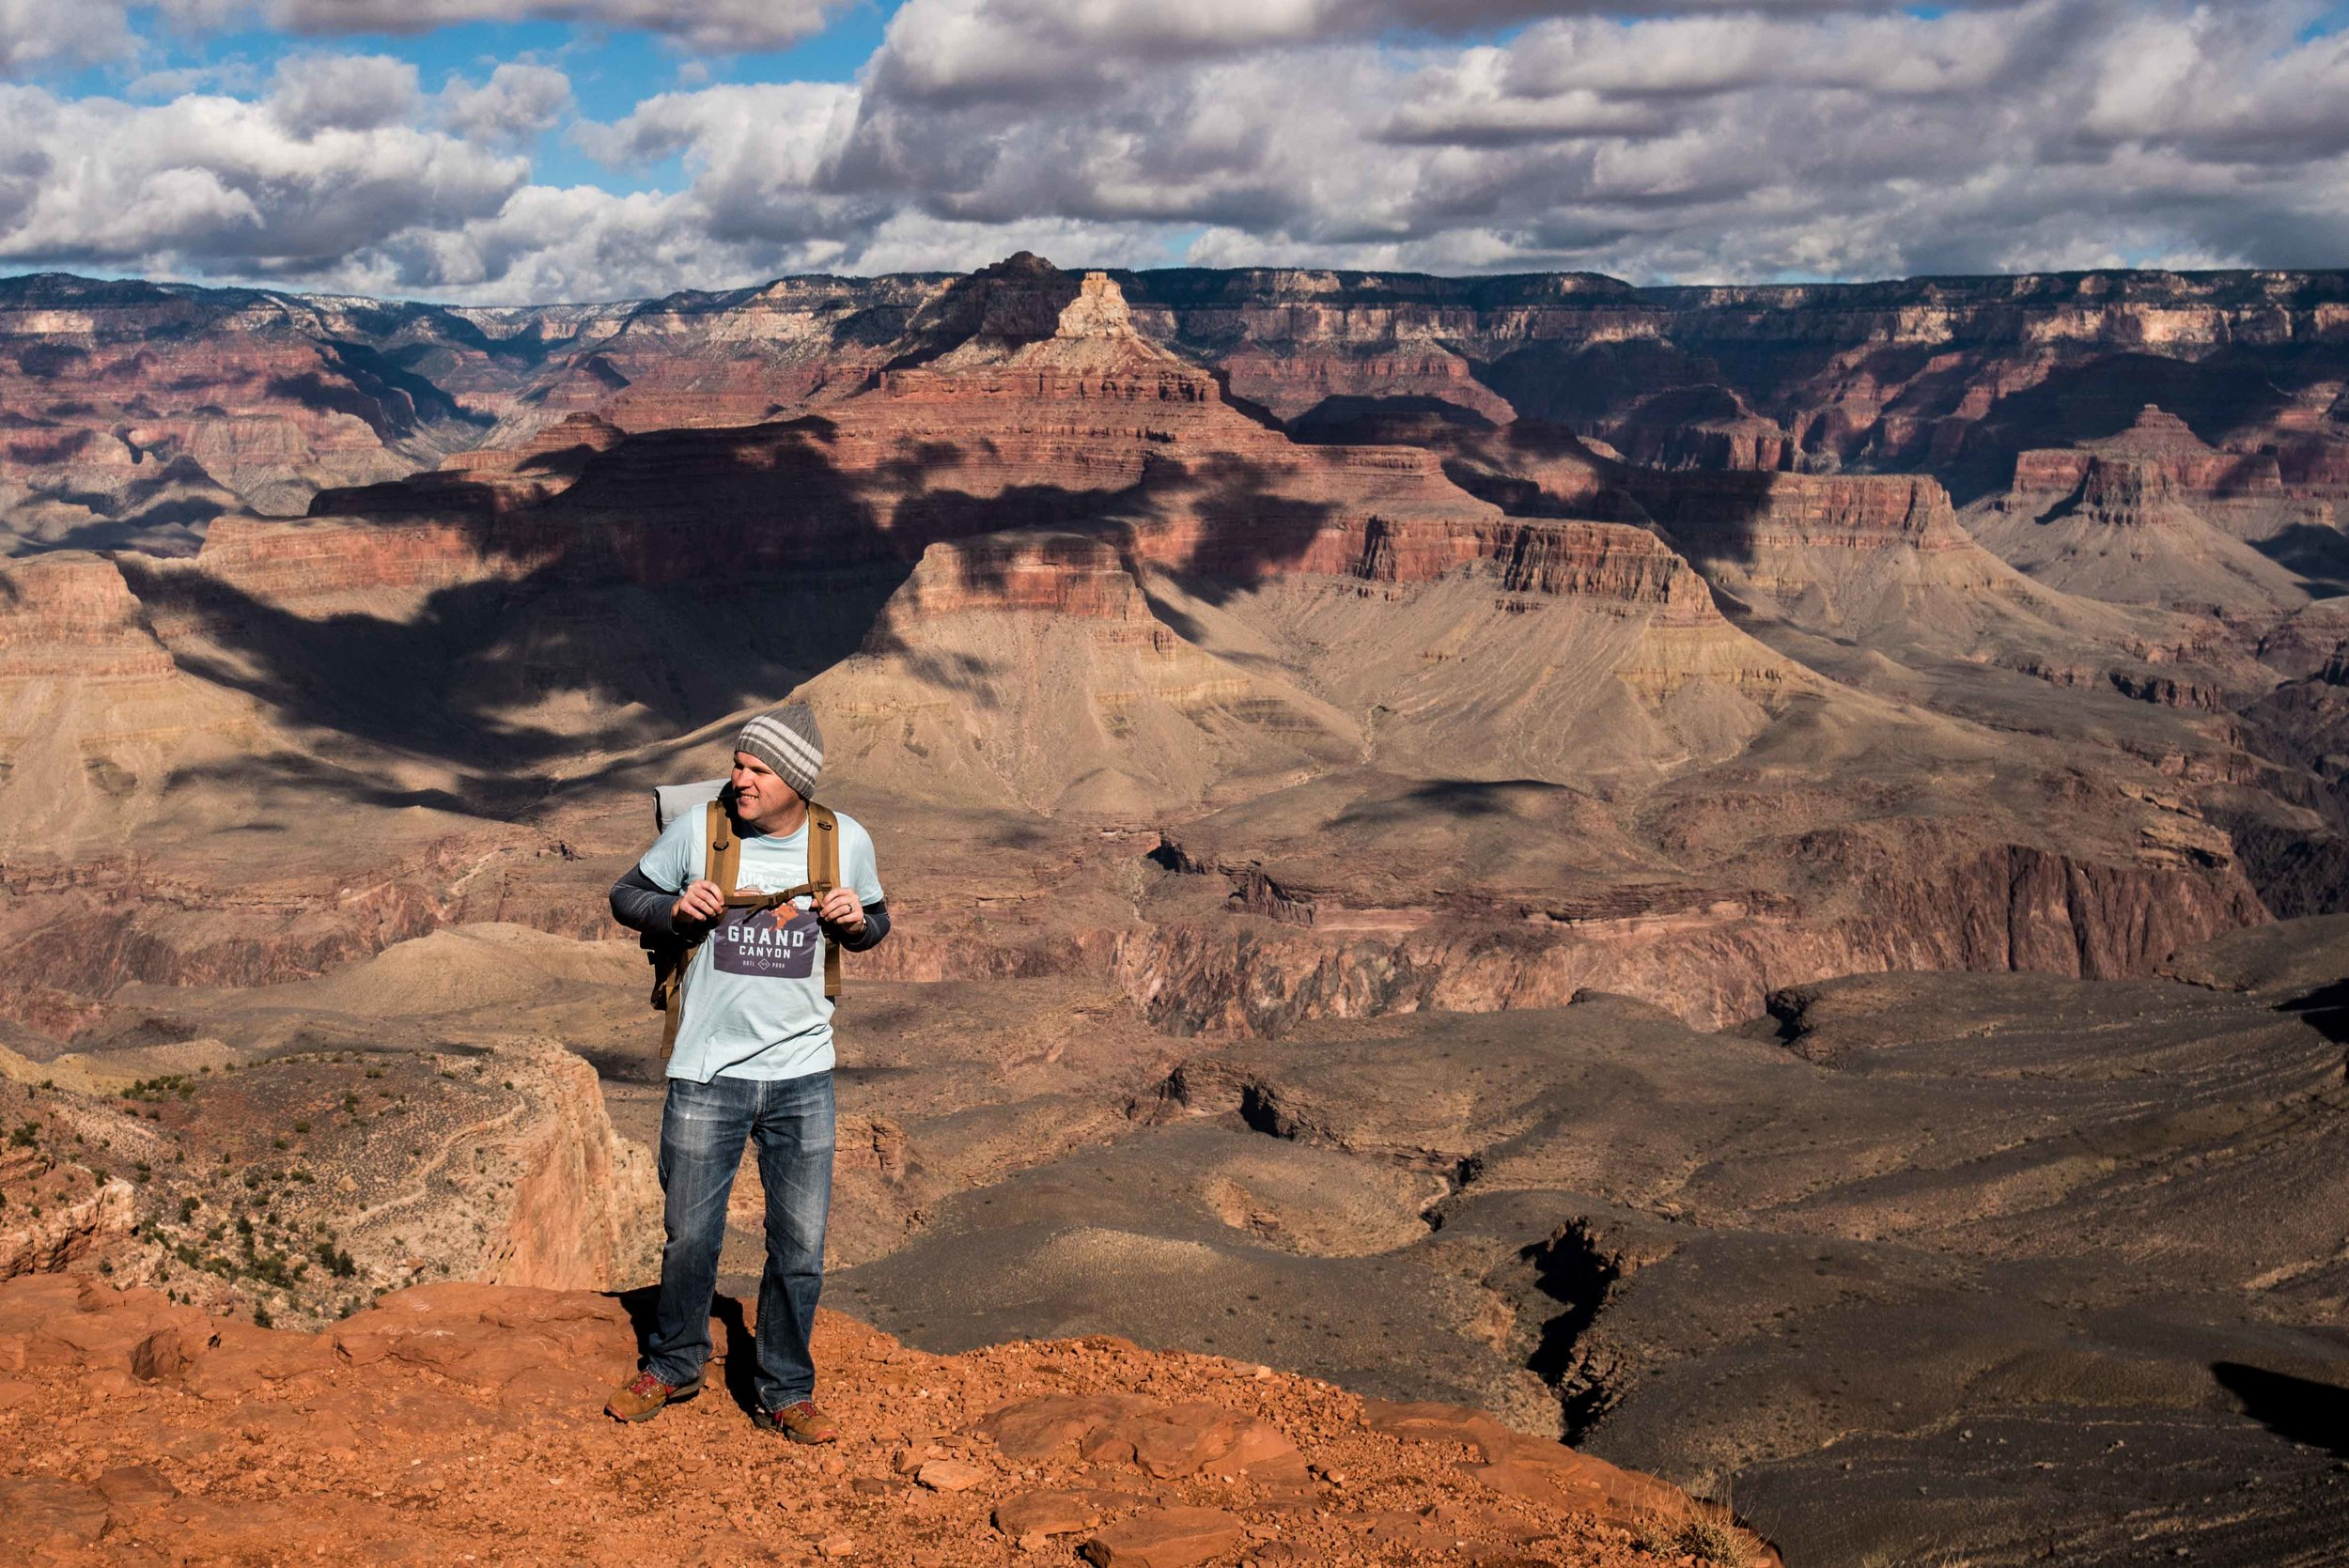 The only doofus wearing a Grand Canyon t-shirt at the Grand Canyon.